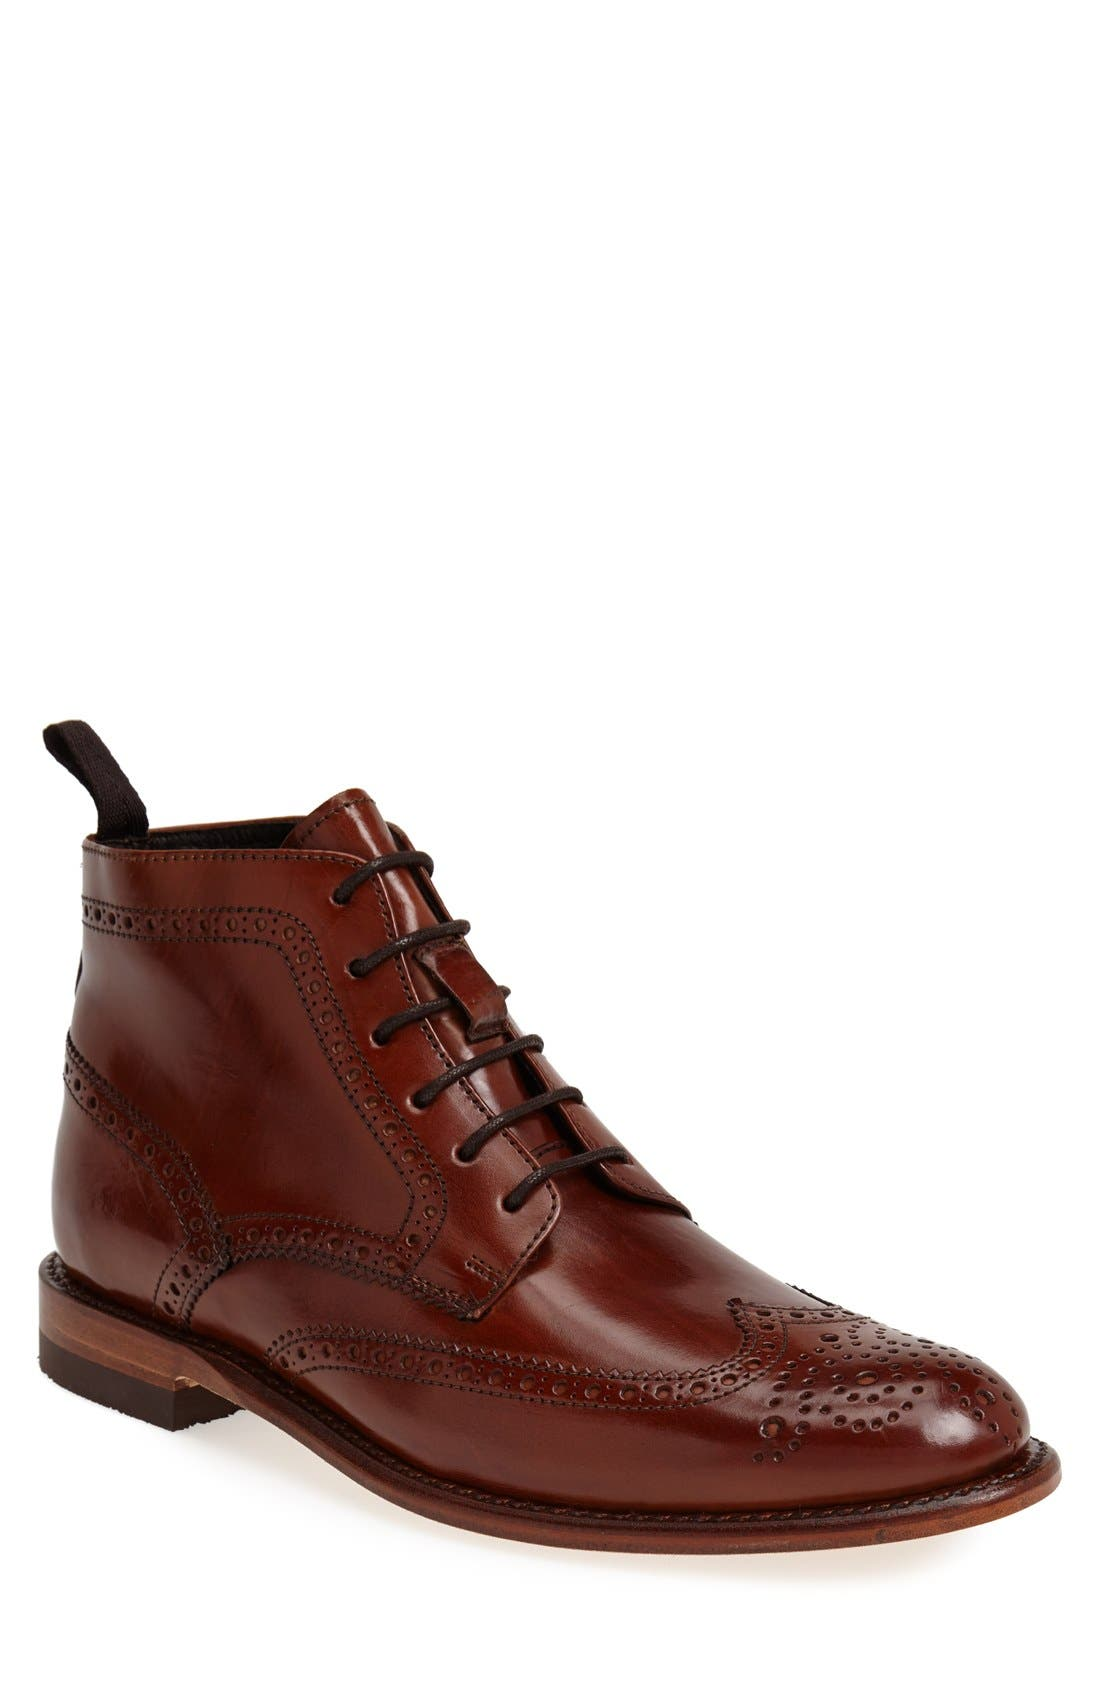 'Newport' Wingtip Boot,                         Main,                         color, COGNAC